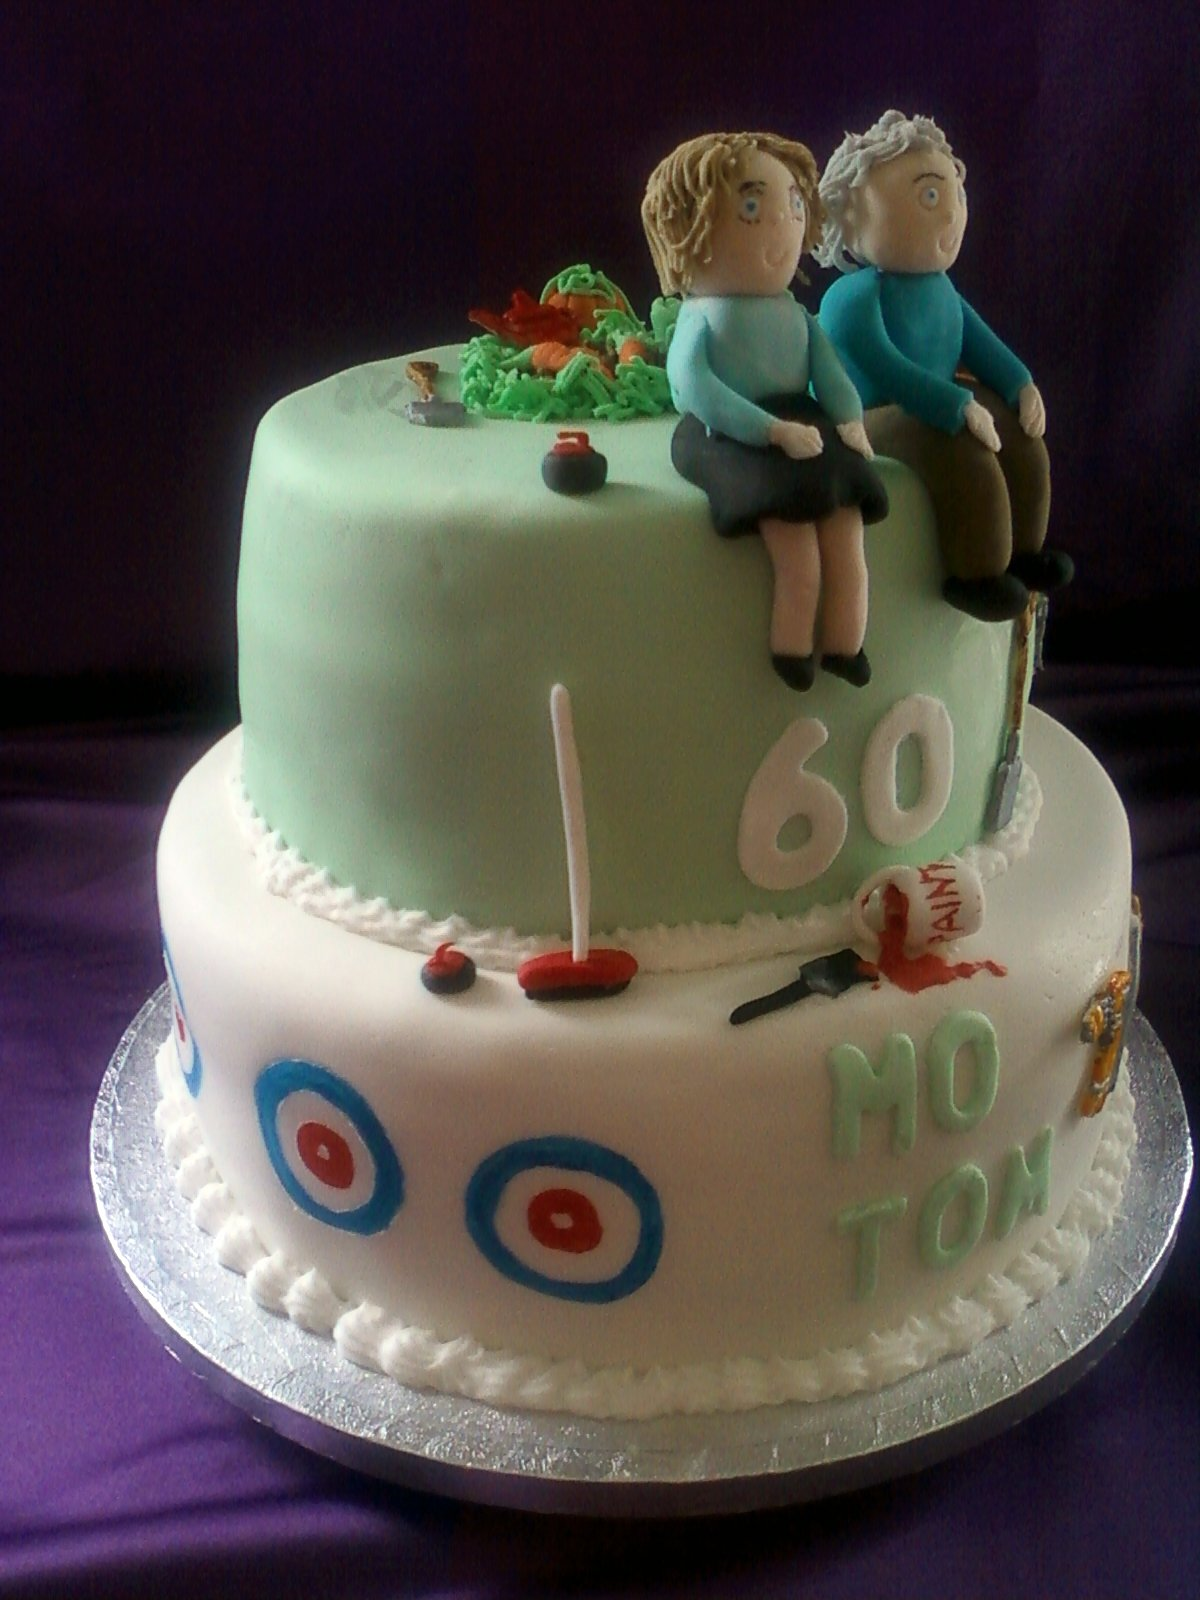 Joint Birthday Cake Images : Joint 60th